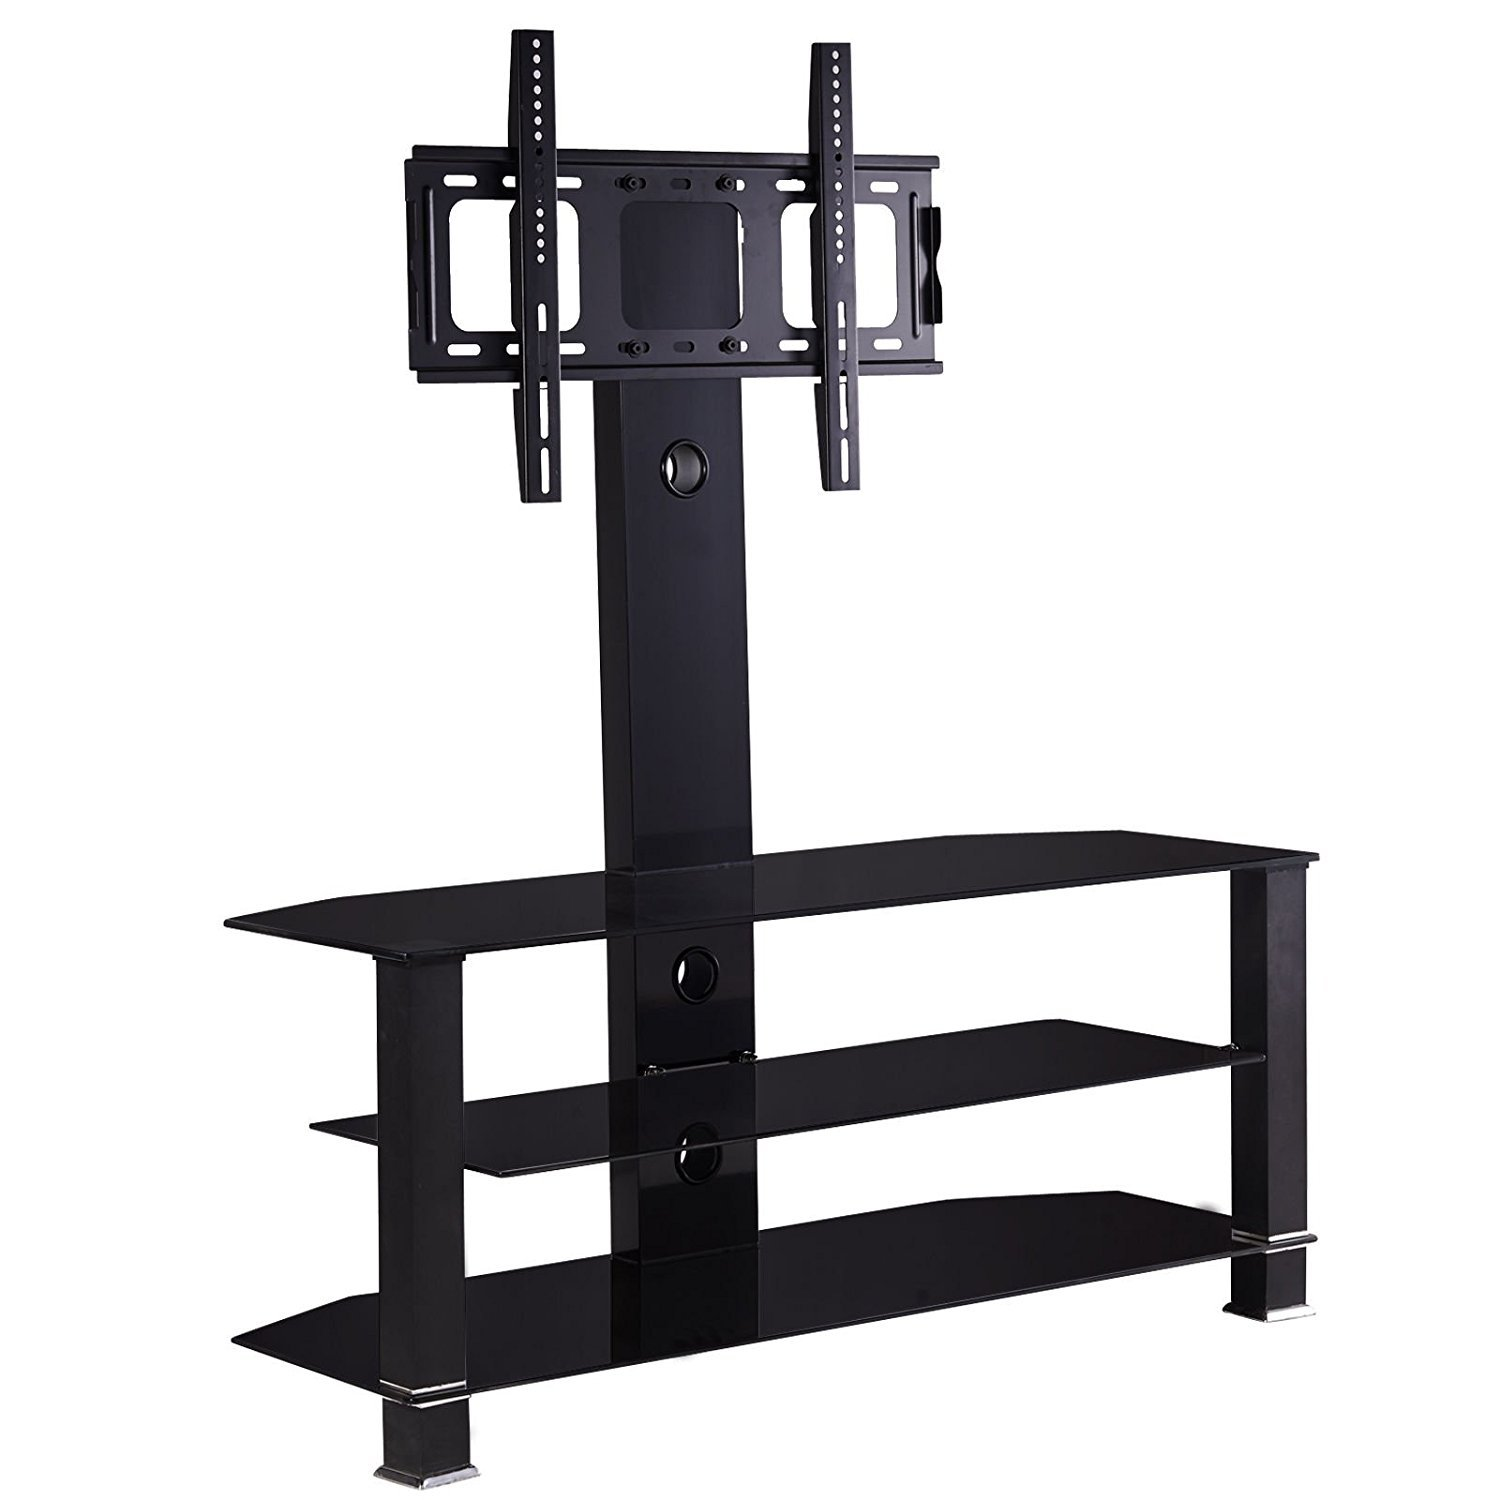 Cantilever Glass TV Stand with Bracket for 32 to 55 inches Plasma LCD TV Black Tube mecor